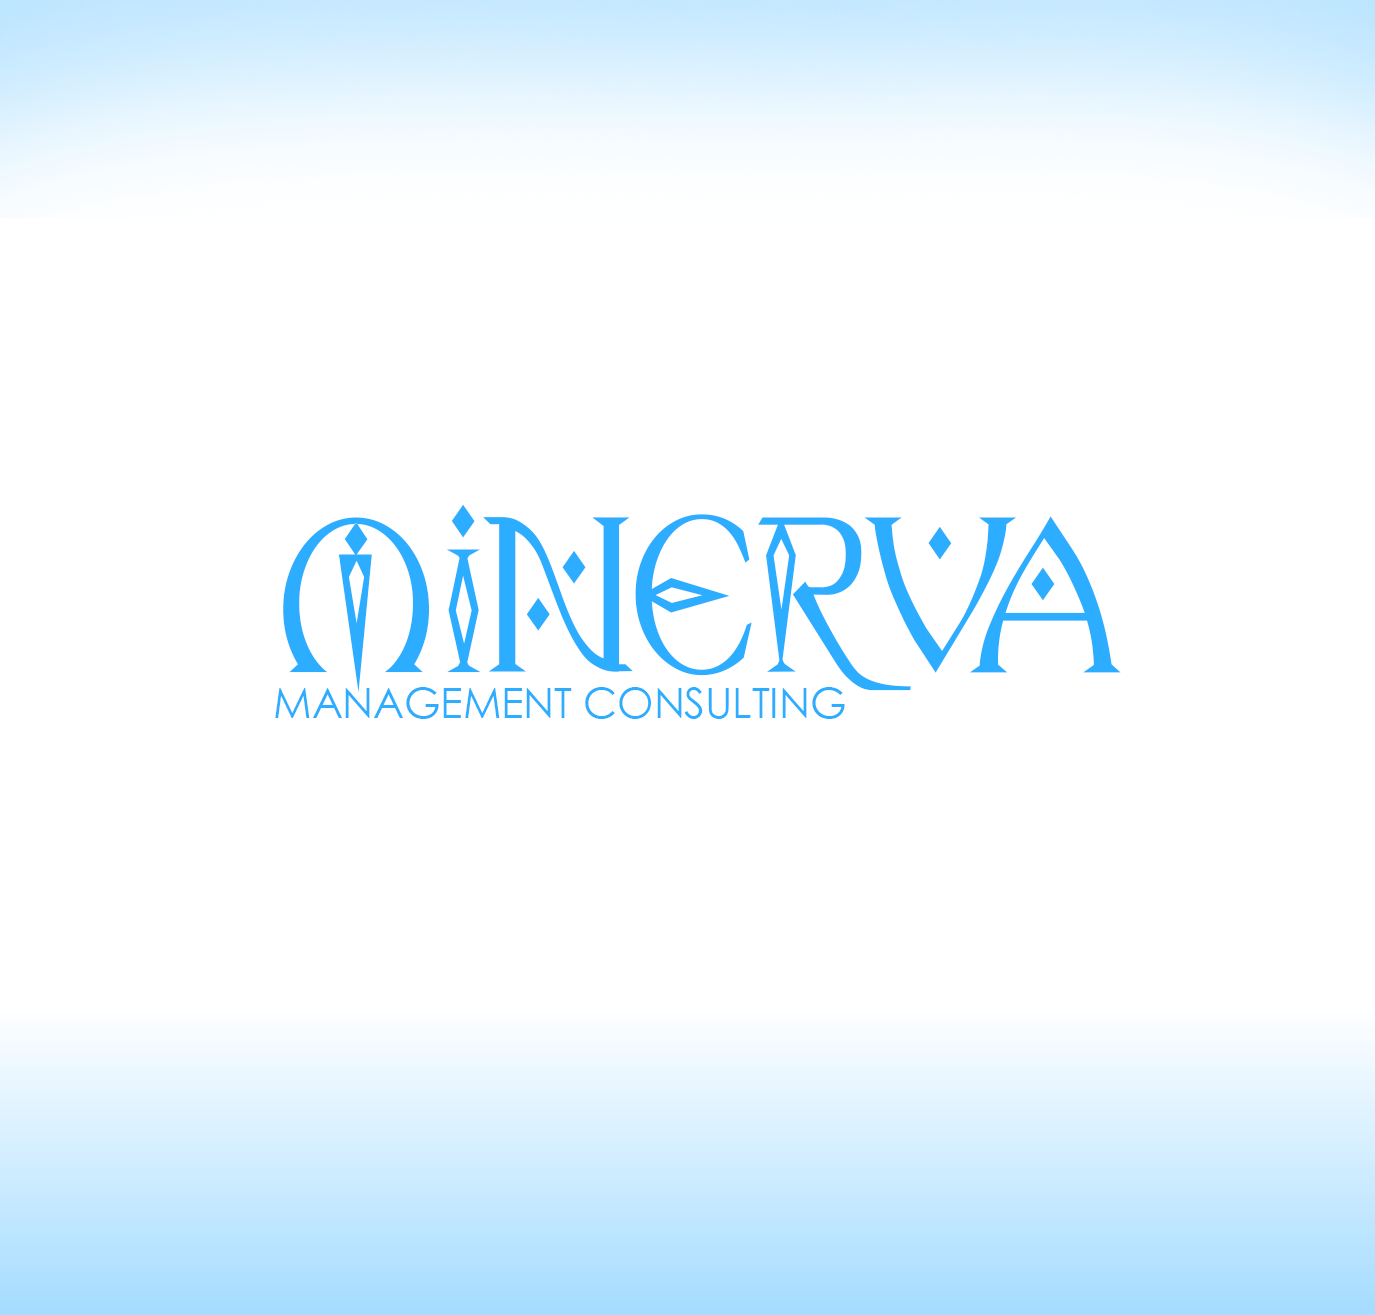 Logo Design by Jessy Pimentera - Entry No. 85 in the Logo Design Contest Logo Design for Minerva Management Consulting Limited.